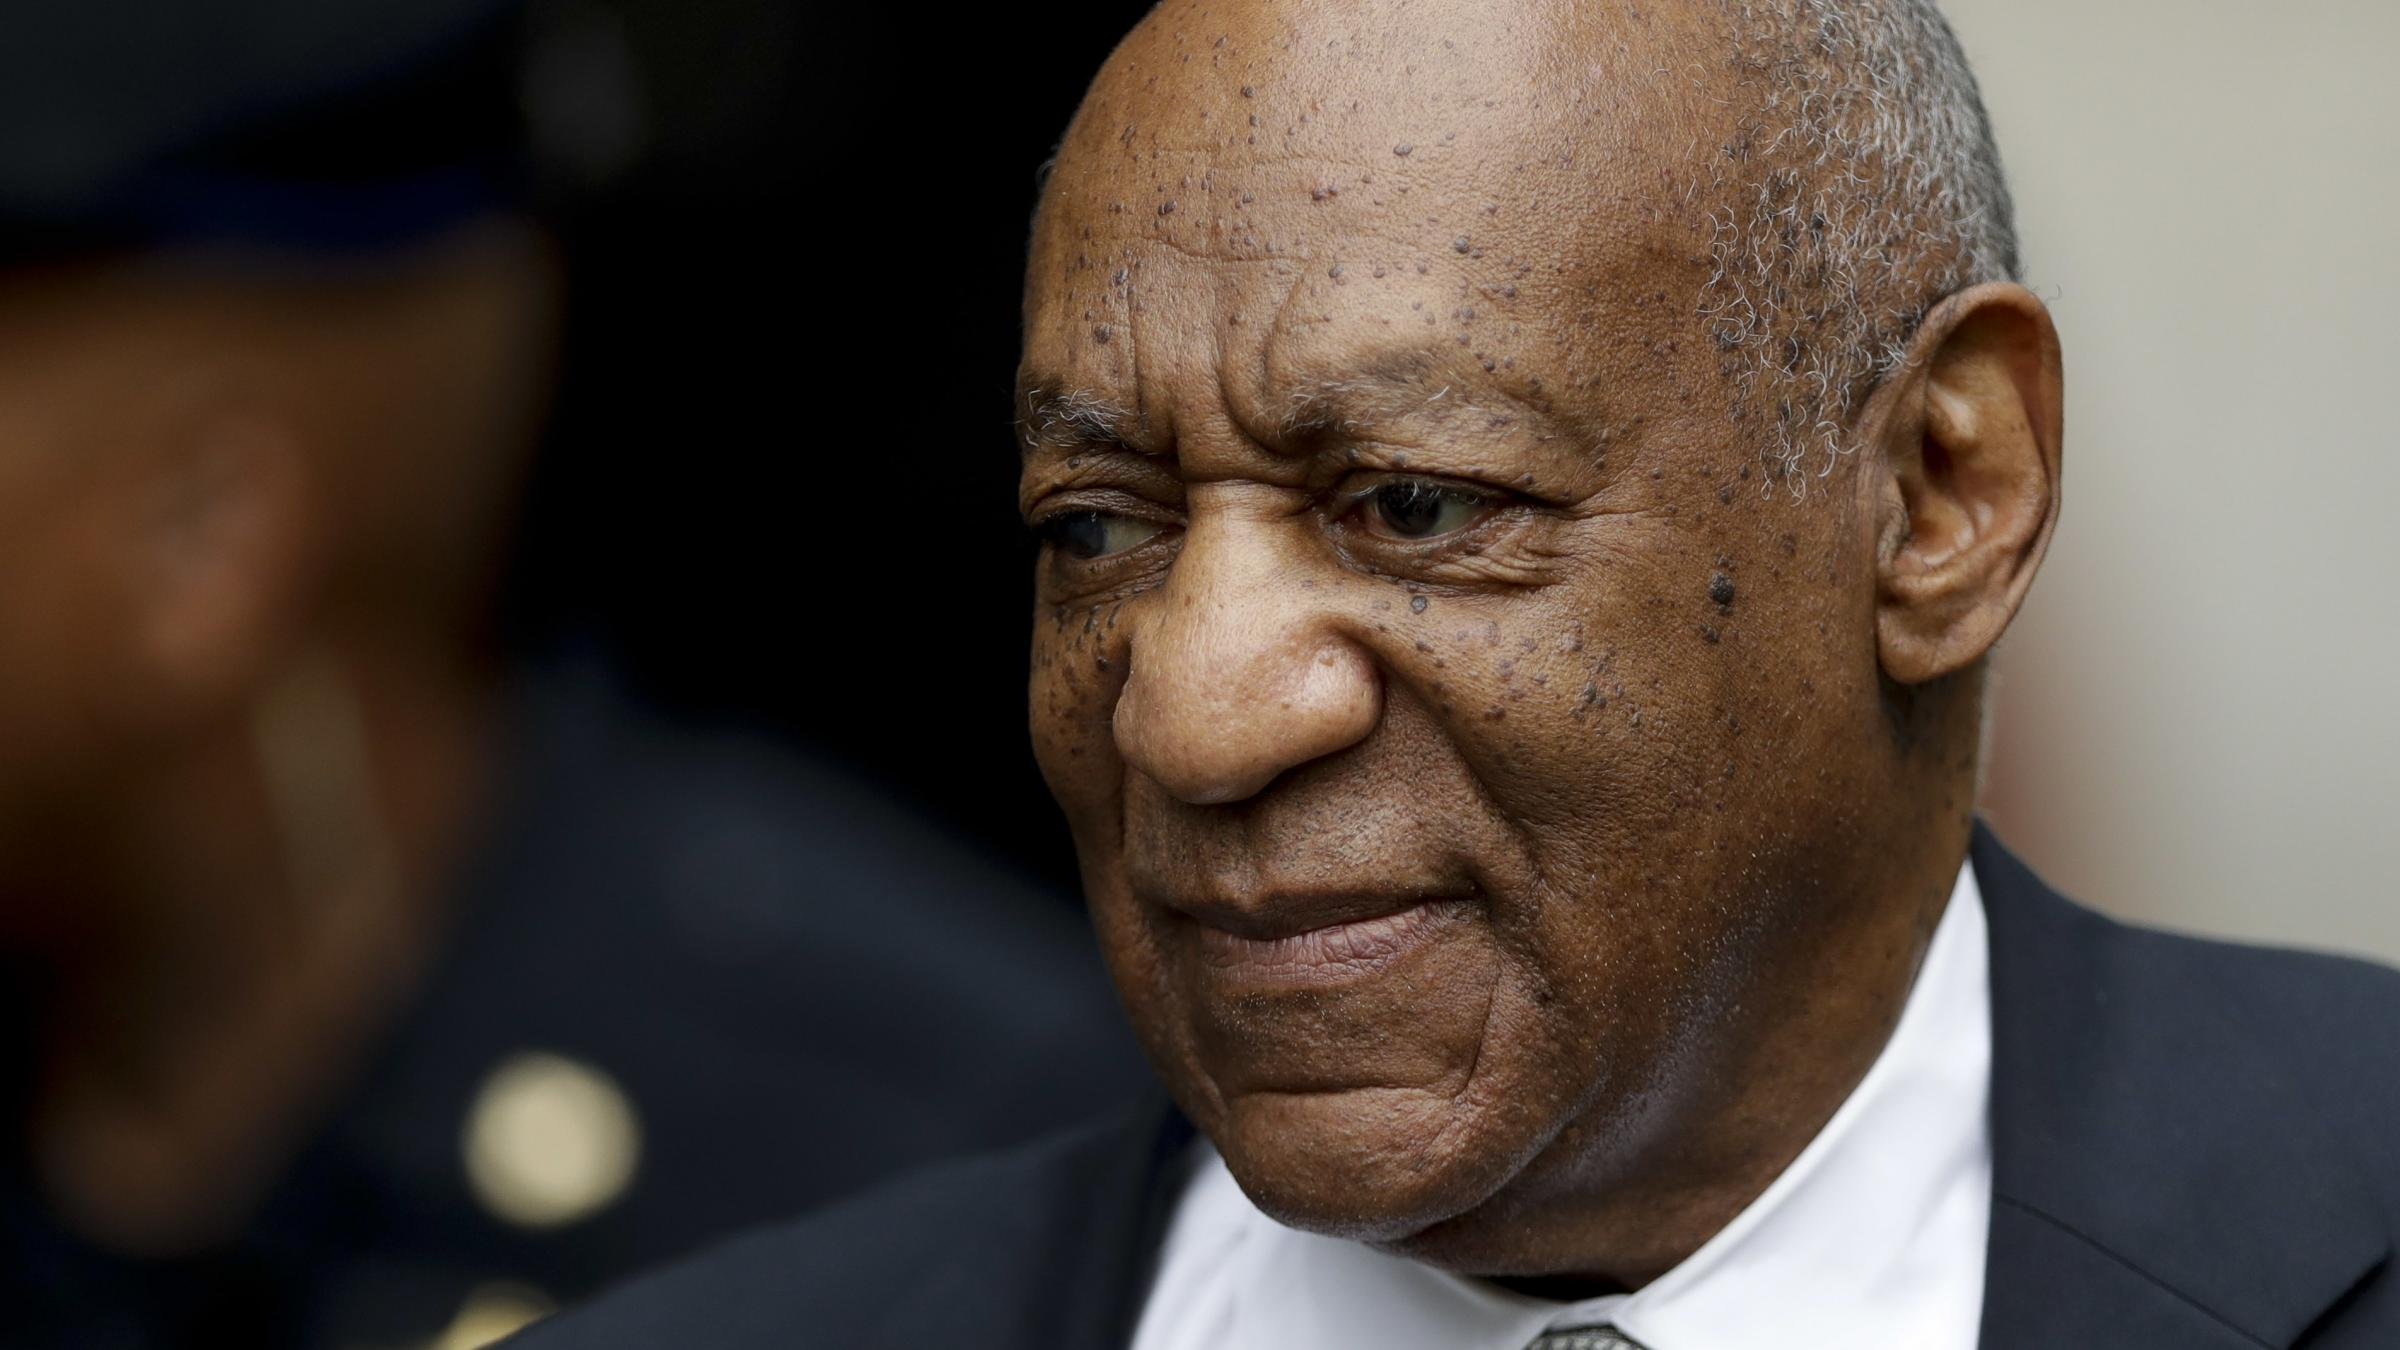 Mistrial declared for Bill Cosby